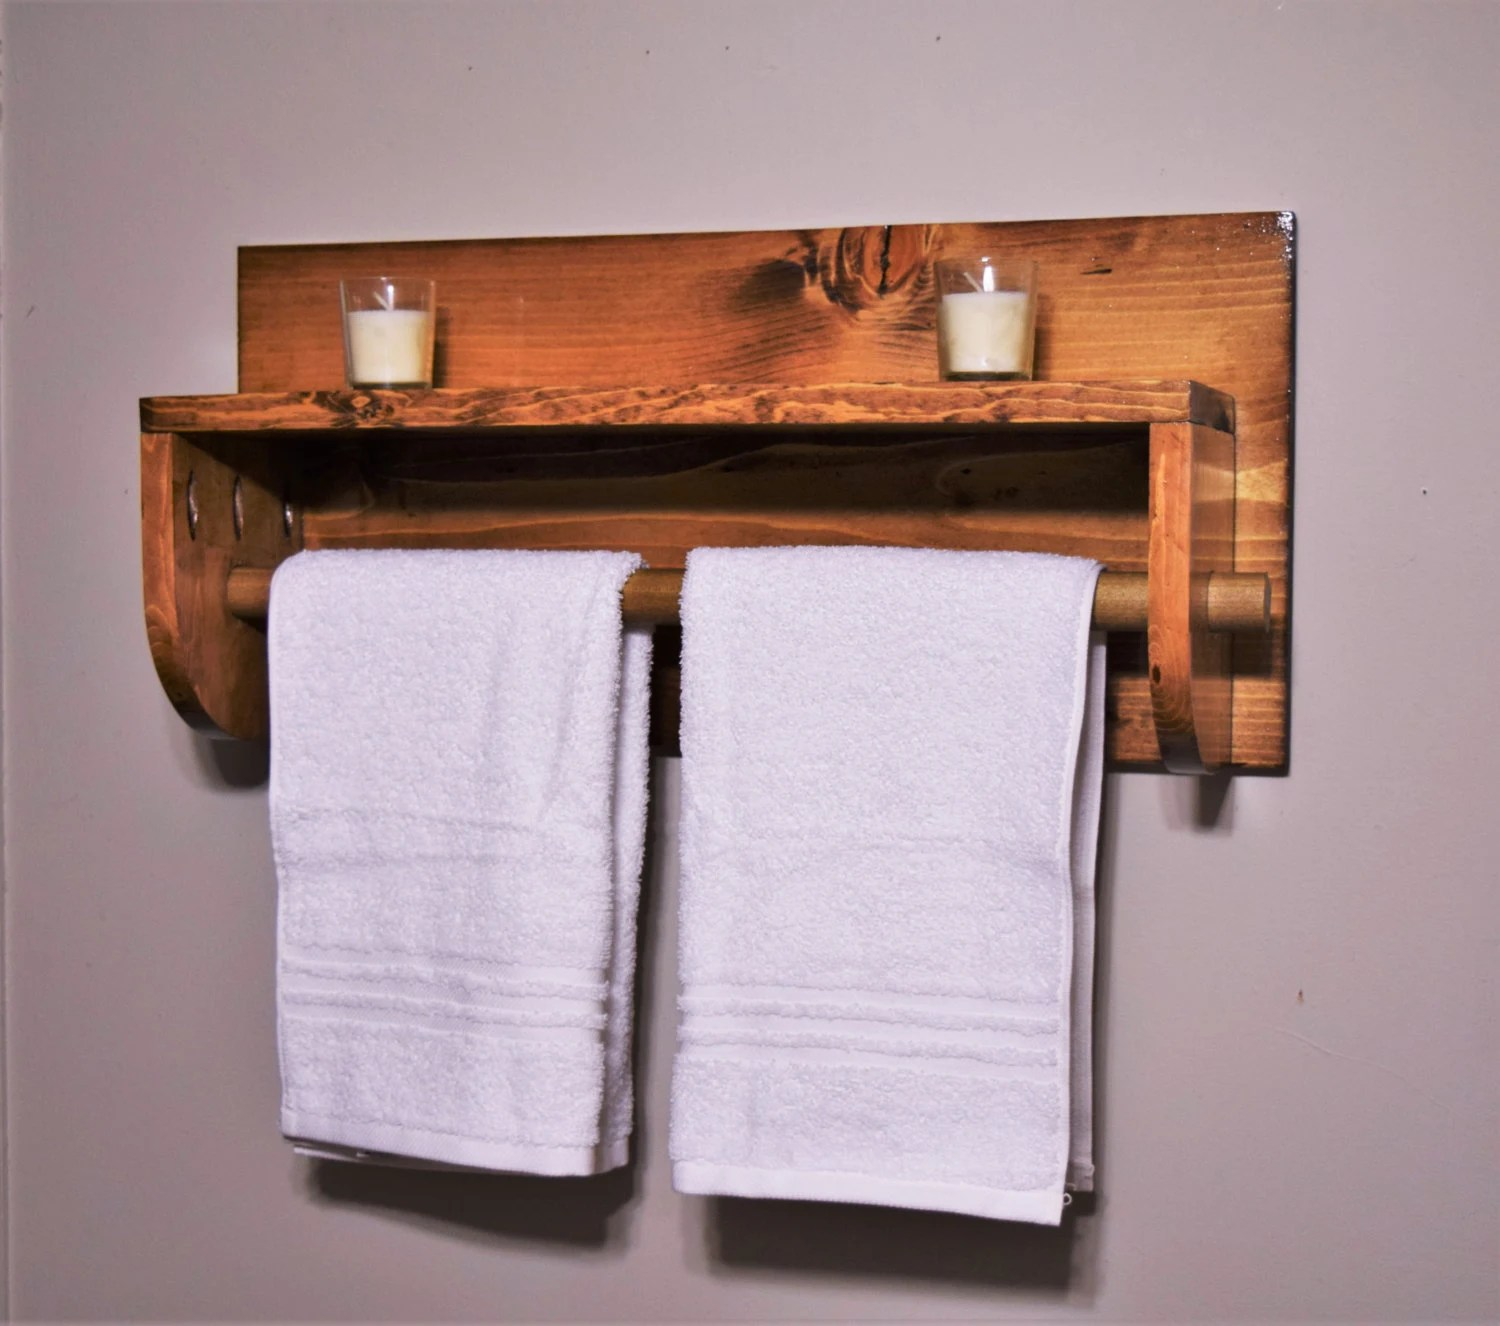 Holz Handtuchhalter Bathroom Shelf With Towel Rack Towel Rack Wooden Towel Rack